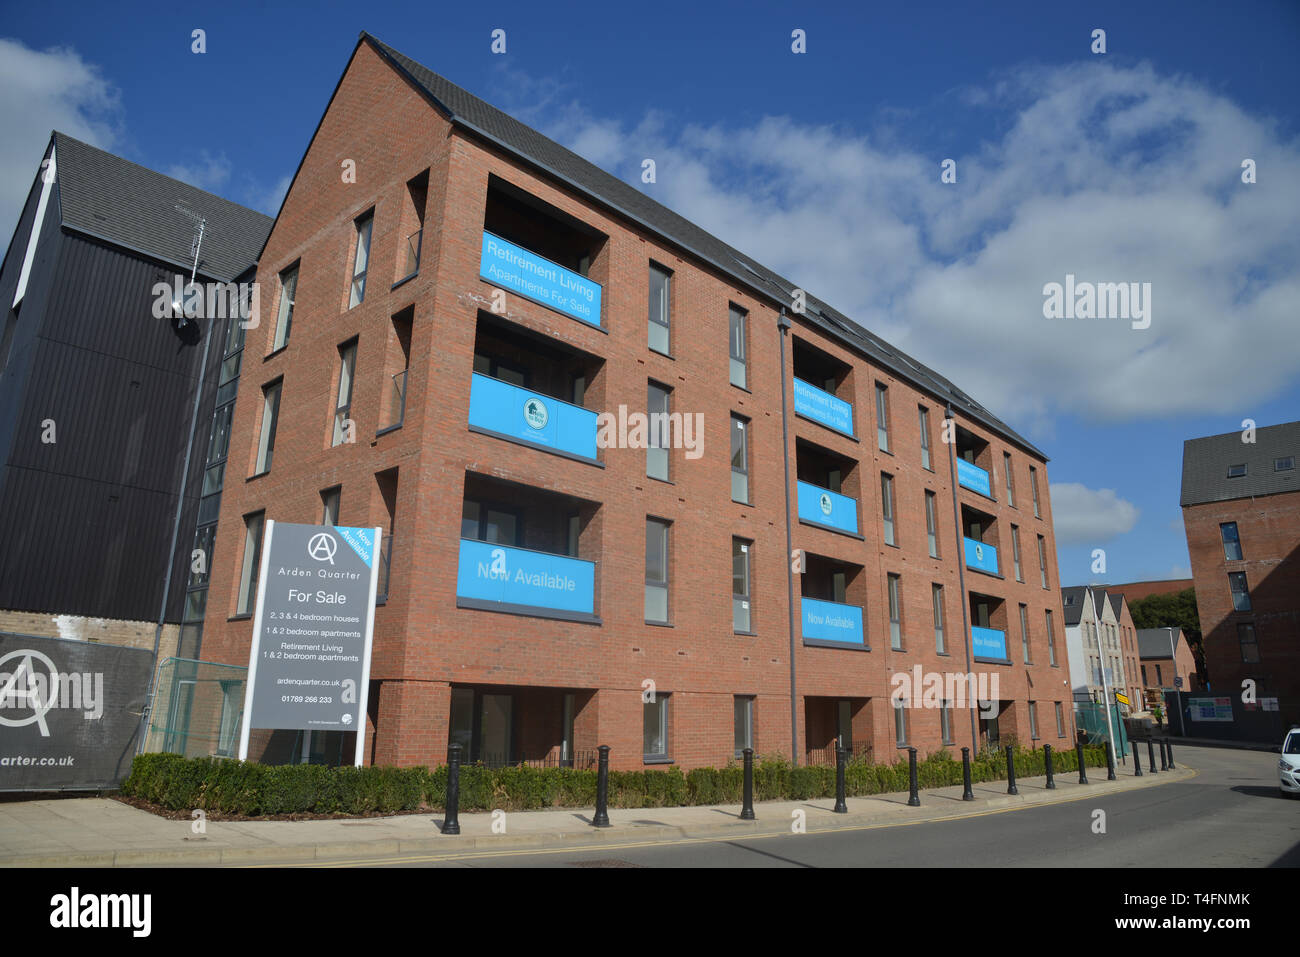 Arden Quarter, a housing development in the Warwickshire town of Stratford upon Avon close to the railway station Stock Photo